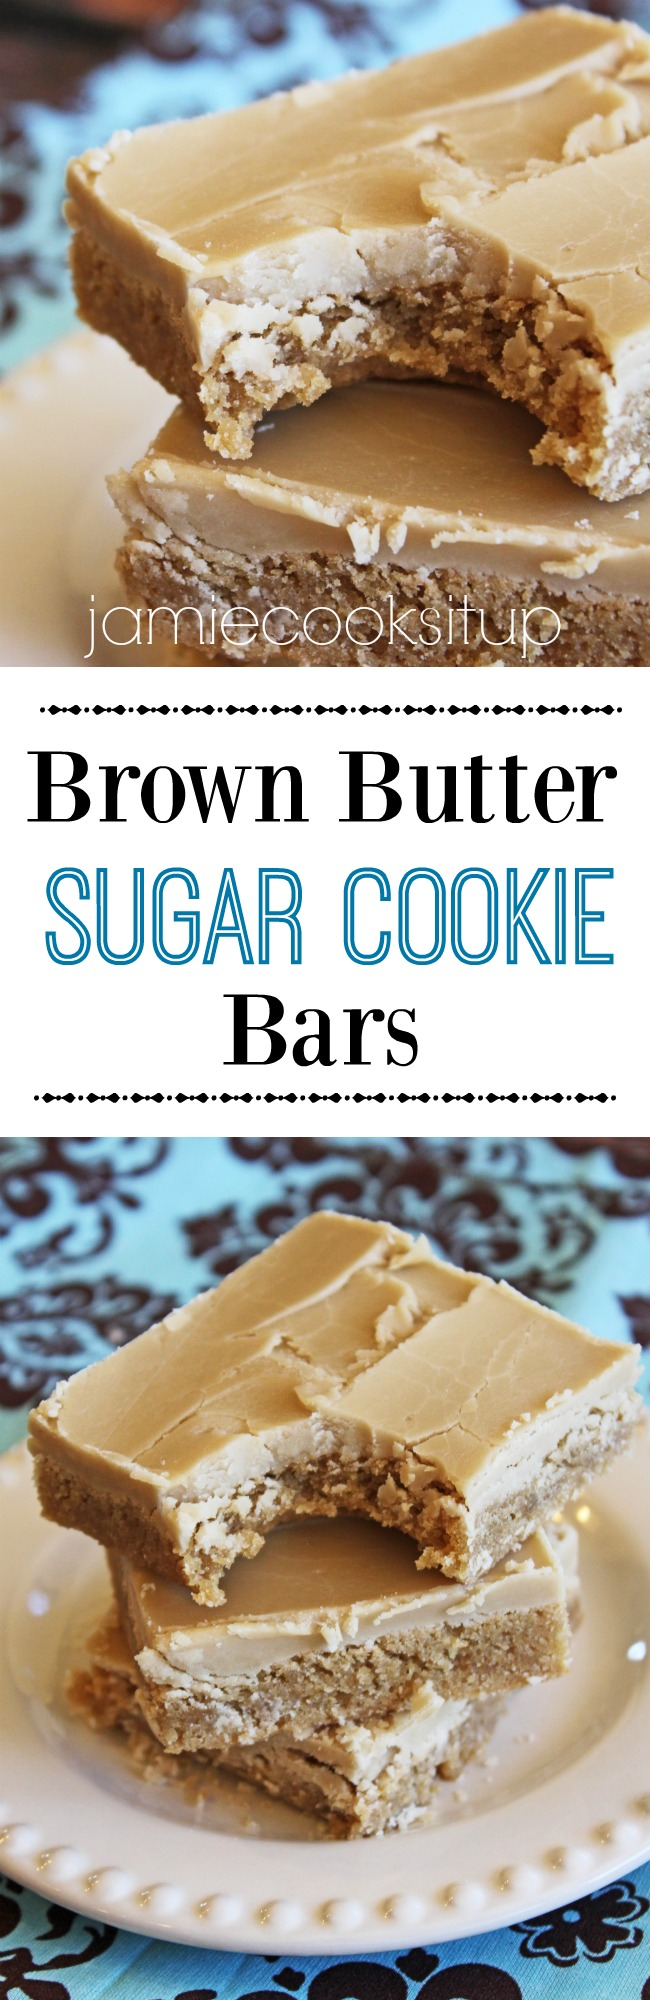 Brown Butter Sugar Cookie Bars from Jamie Cooks It Up!